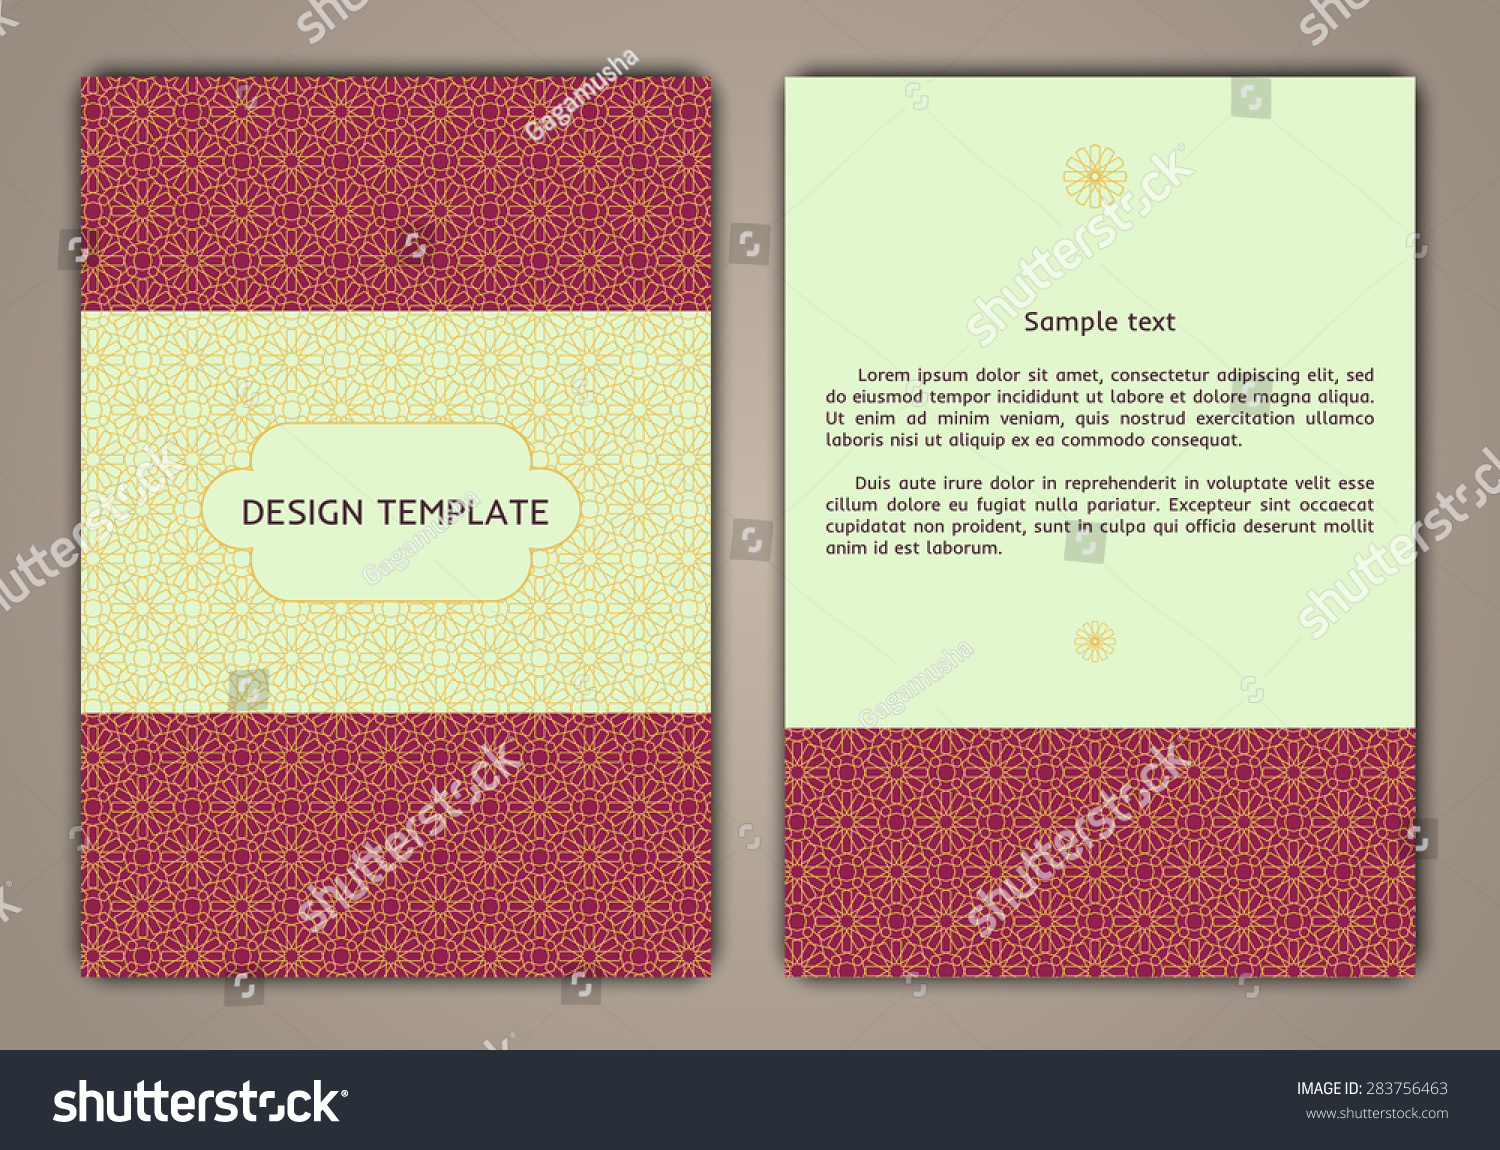 Design Templates Banners Flyers Booklets Can Stock Vector (Royalty ...